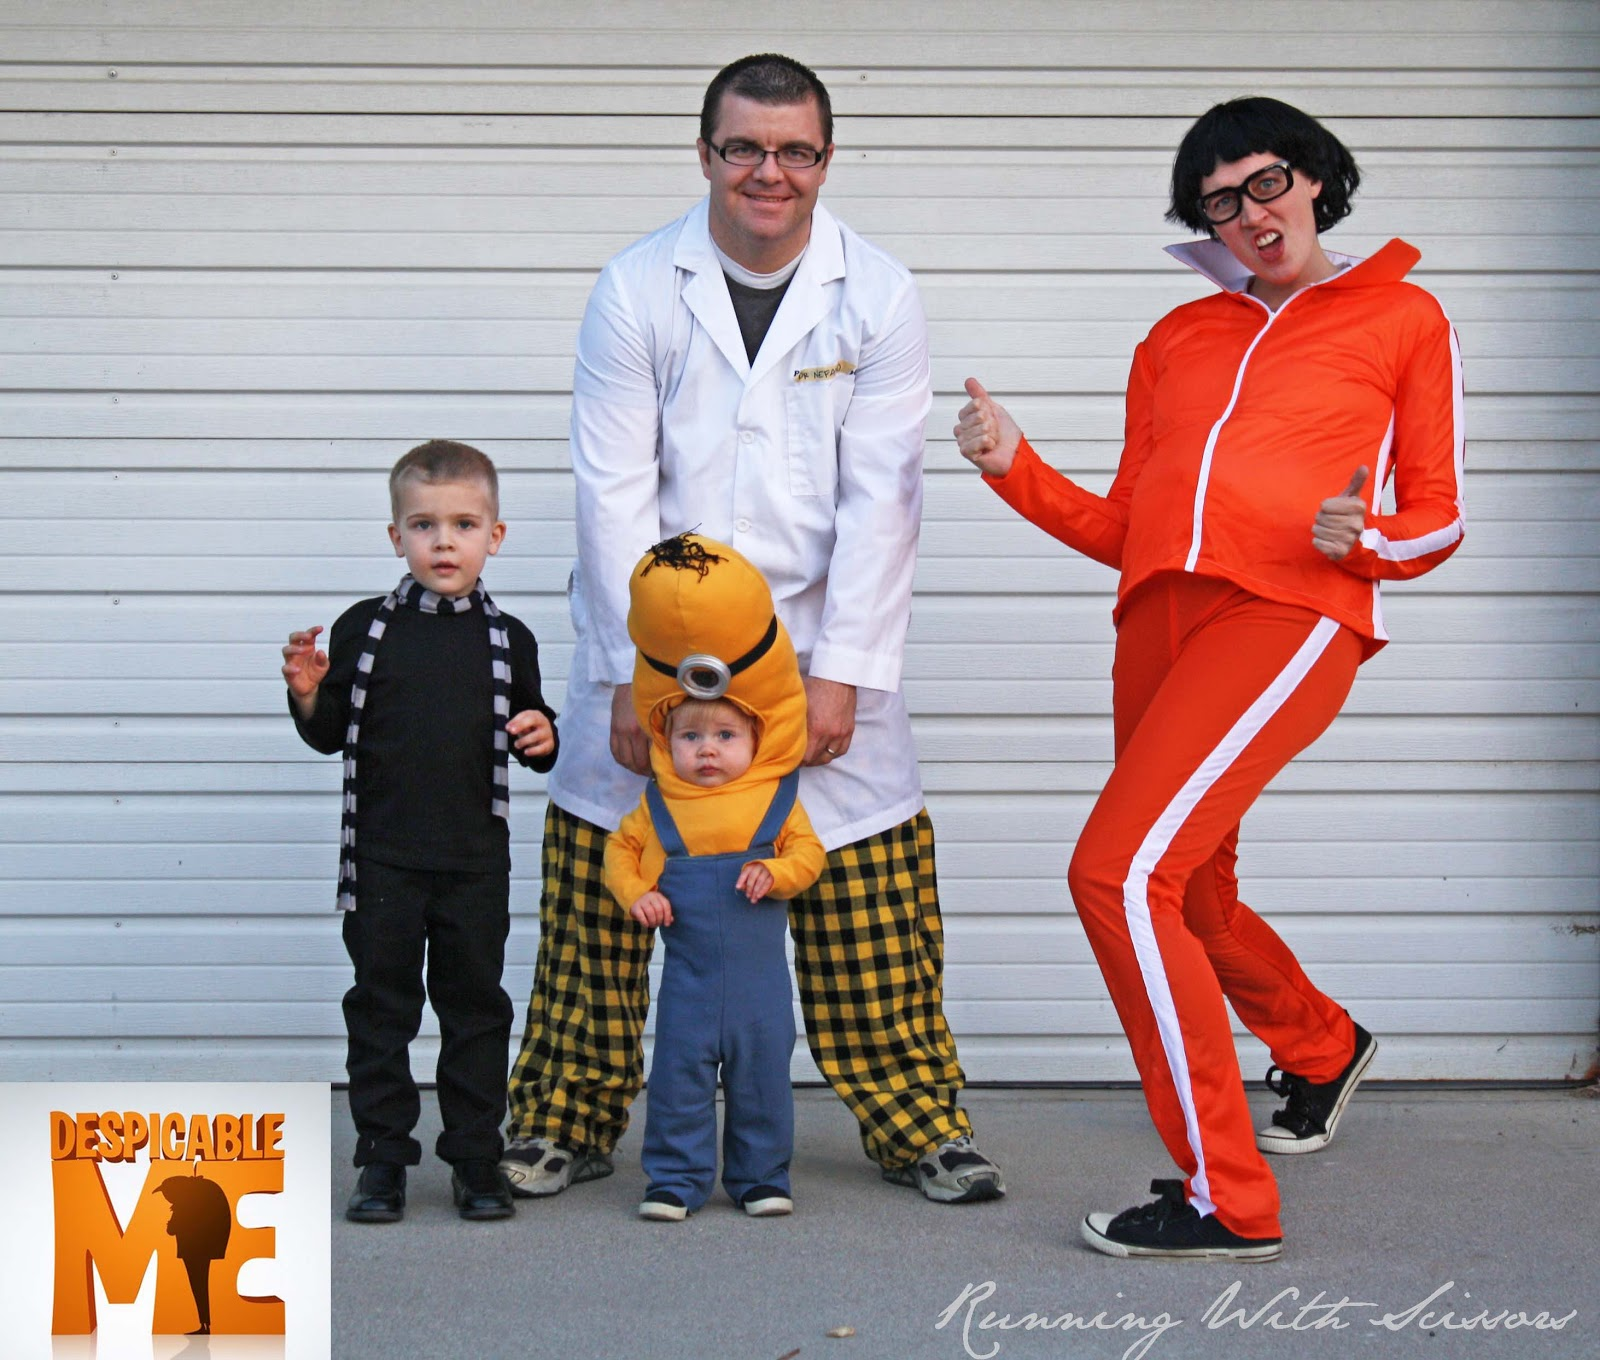 Despicable Me and Maternity Halloween Costume  sc 1 st  Running With Scissors & Running With Scissors: Despicable Me and Maternity Halloween Costume